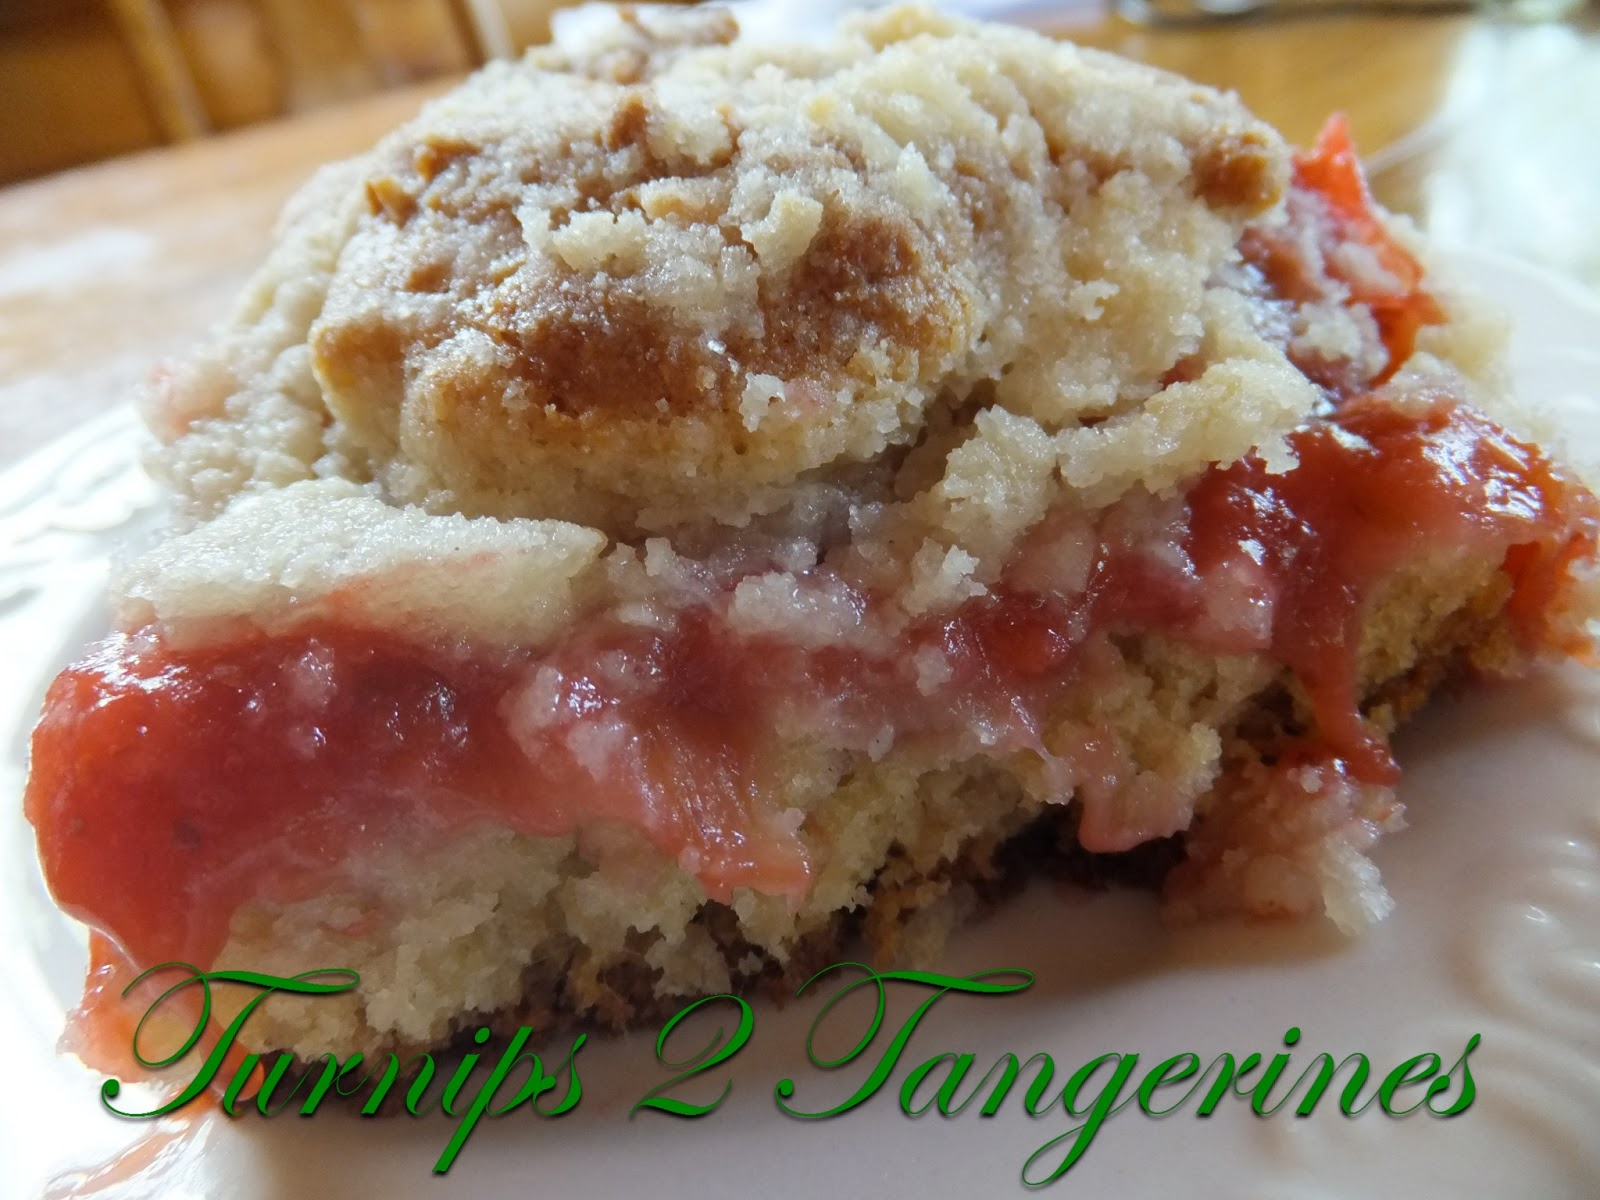 Turnips 2 Tangerines: Rhubarb-Strawberry Coffee Cake